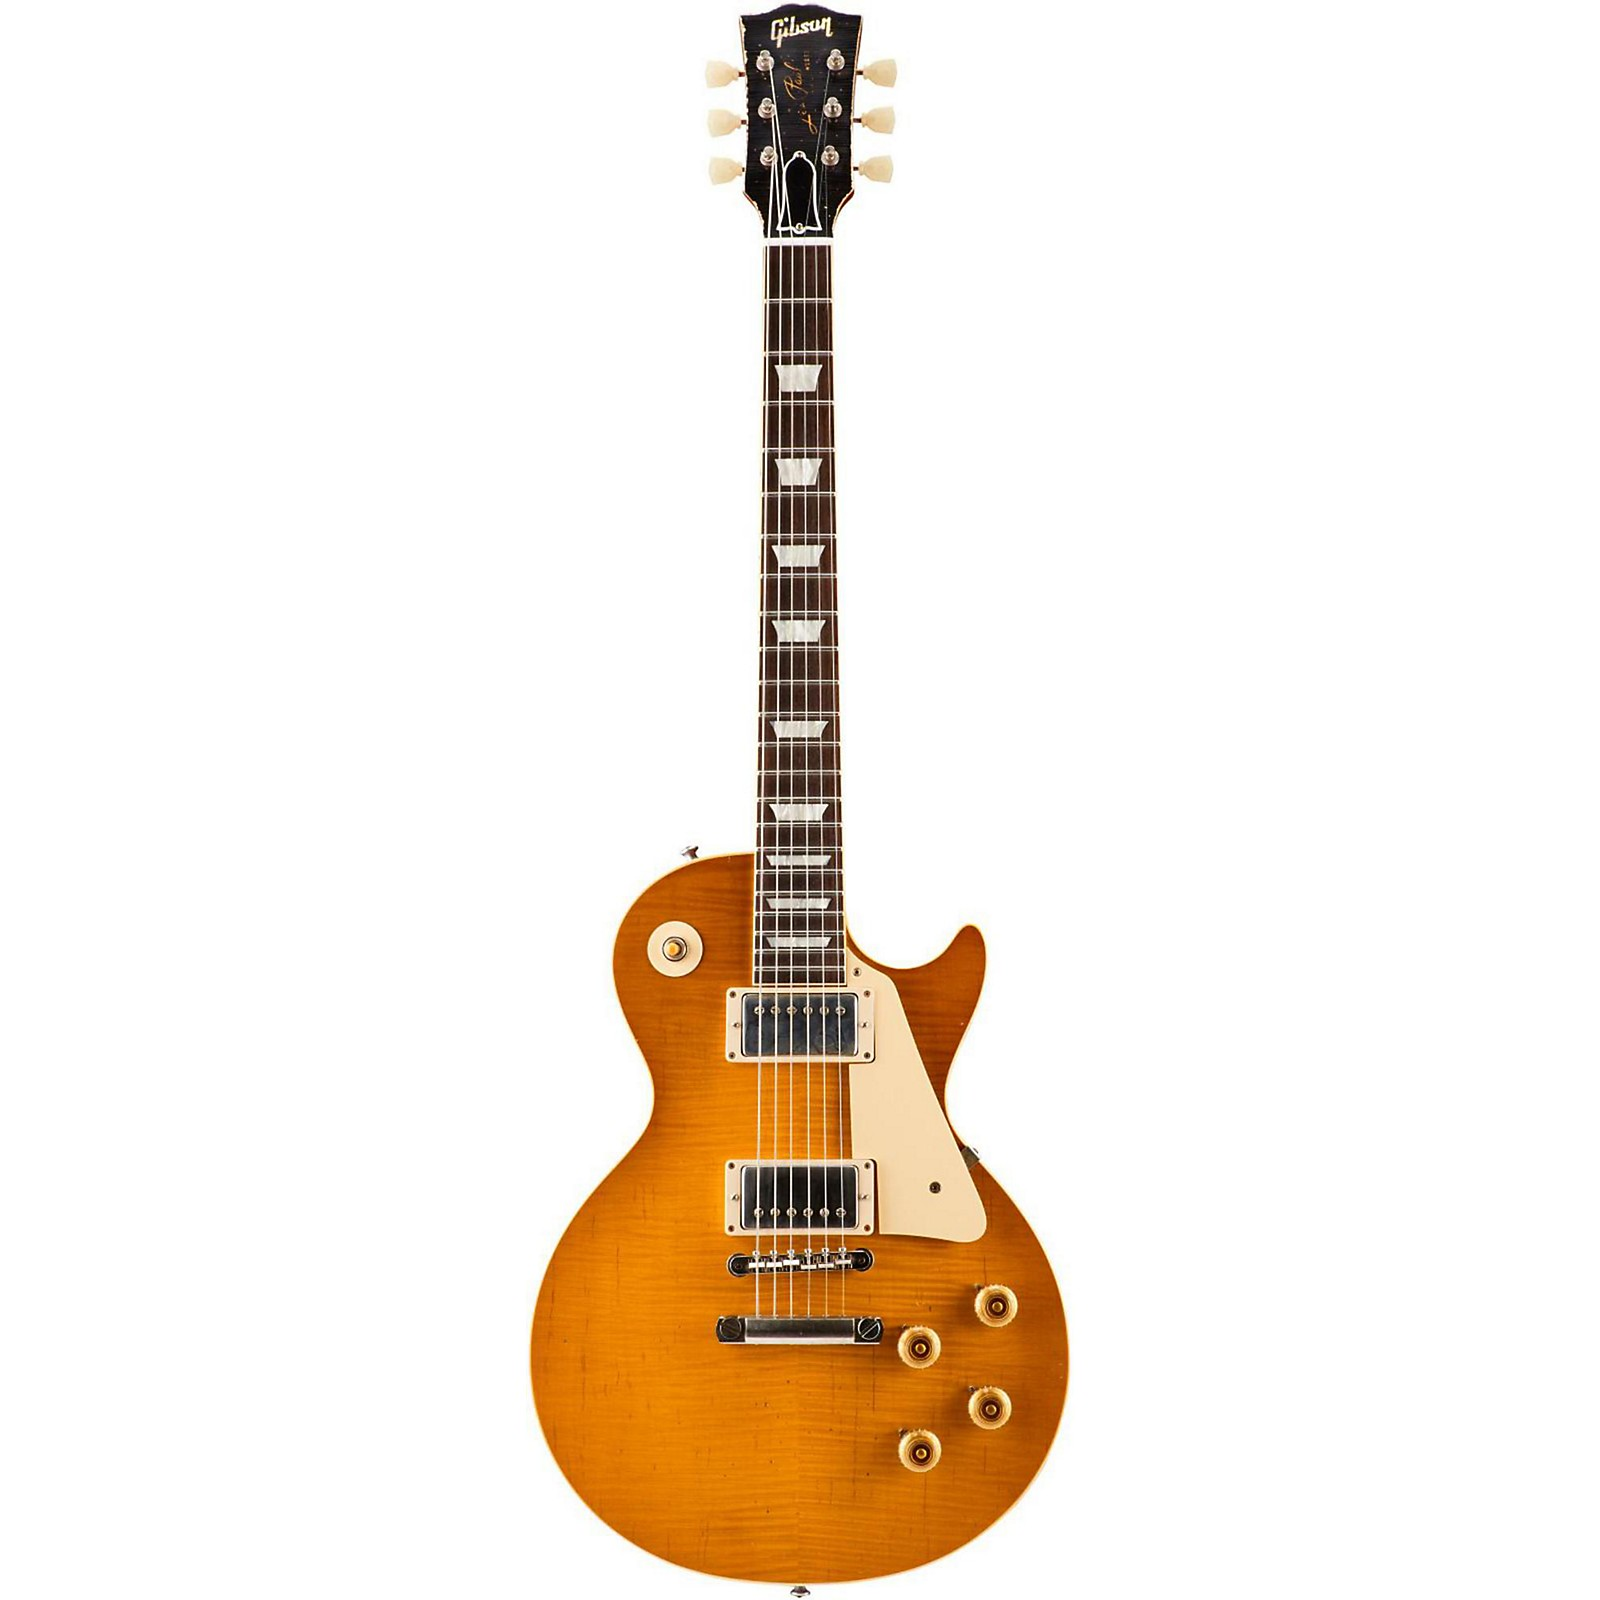 Gibson Custom Rick Nielsen Aged and Signed 1959 Les Paul Standard #9-0655 Electric Guitar